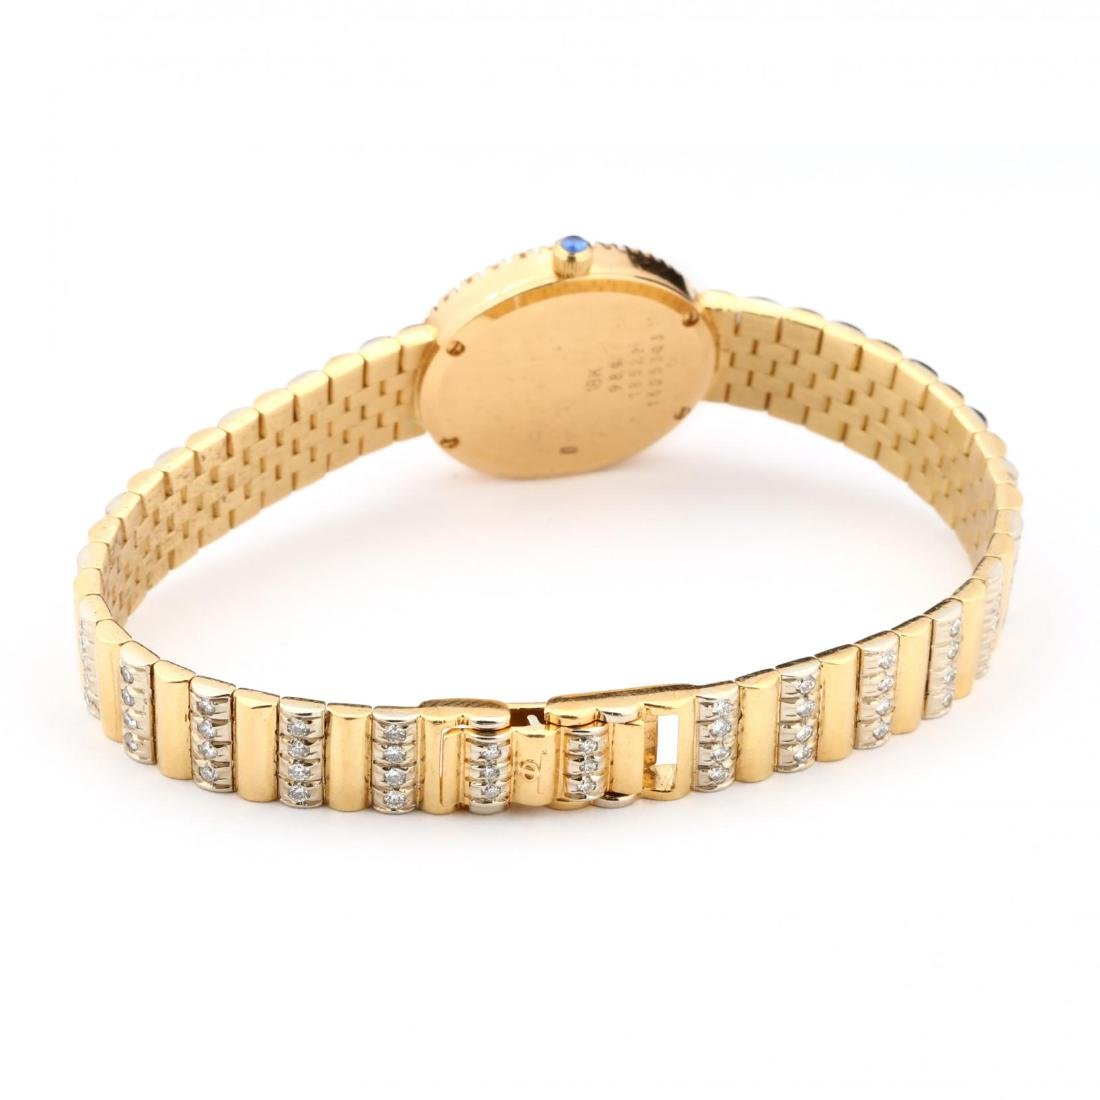 Lady's 18KT Gold and Diamond Watch, Baume & Mercier - 4